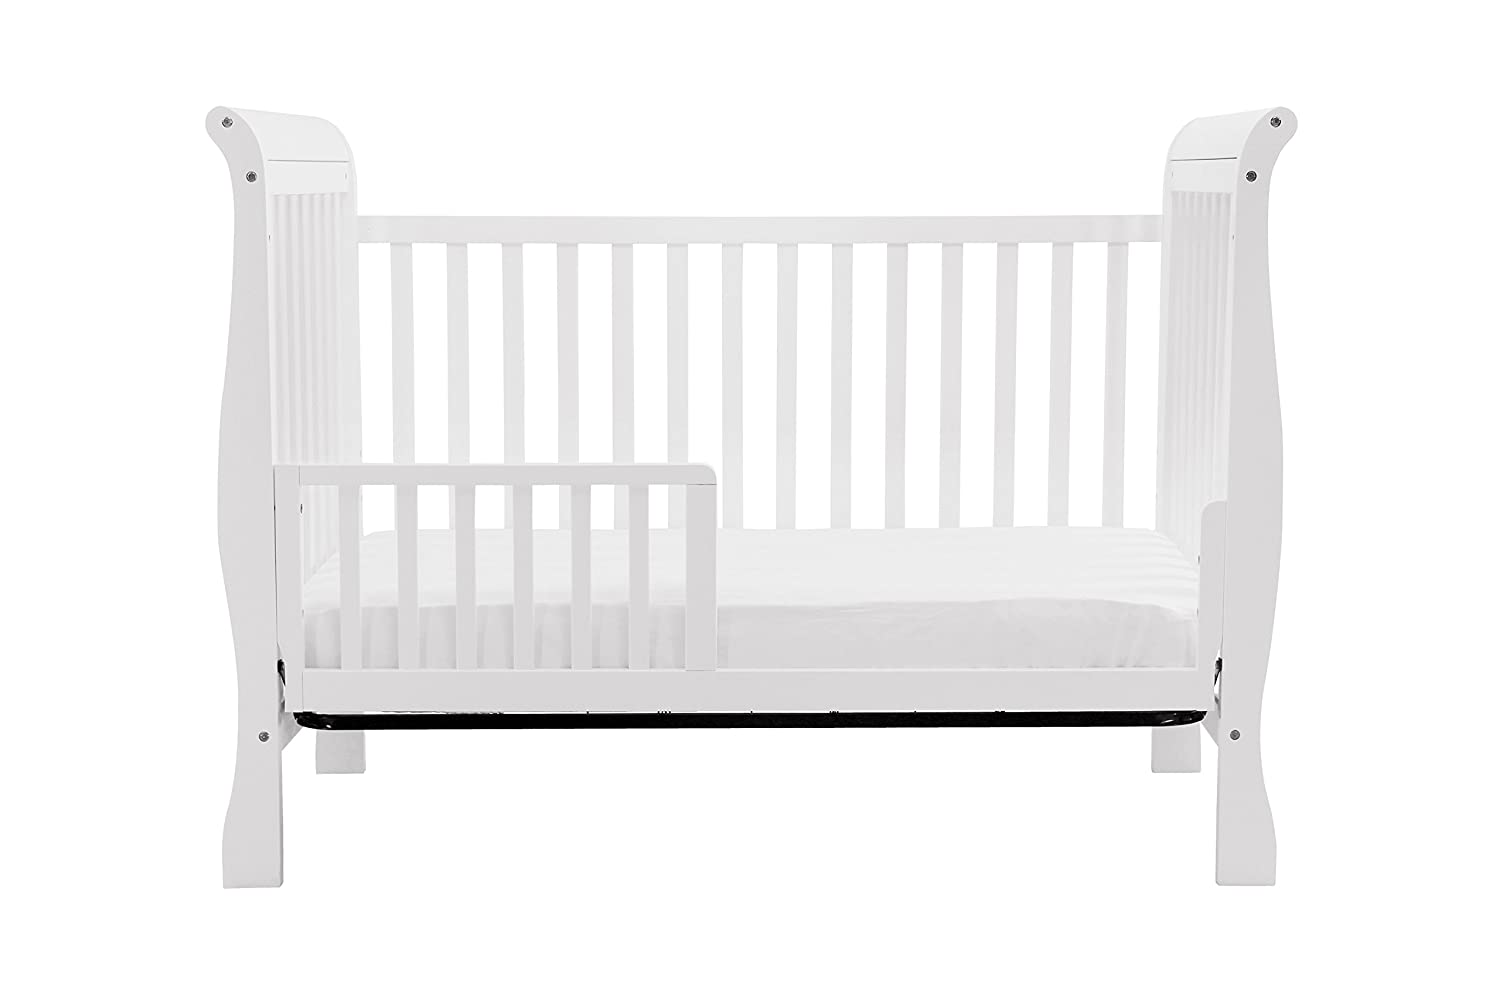 Contemporary white wooden jenny lind crib for your baby to sleep - Contemporary White Wooden Jenny Lind Crib For Your Baby To Sleep 45